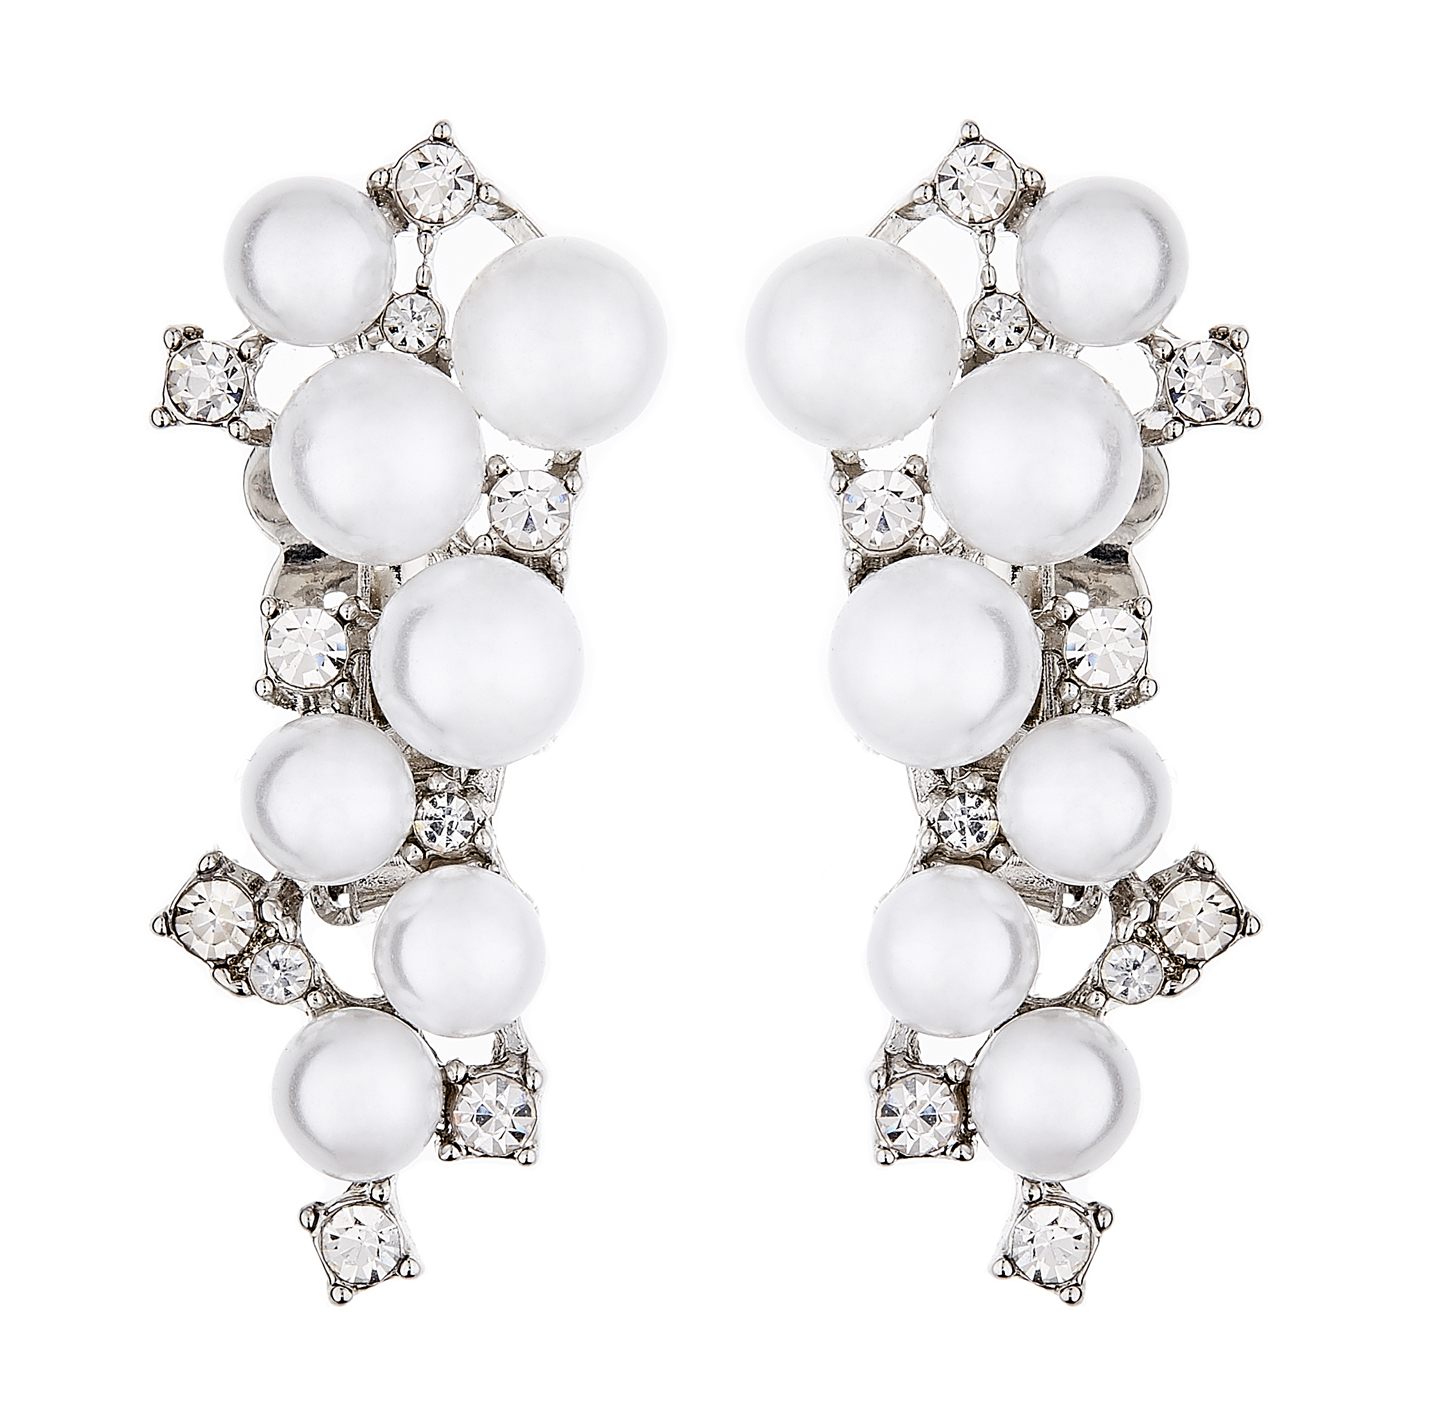 Clip On Earrings - Colola - silver earring with pearls and clear crystals